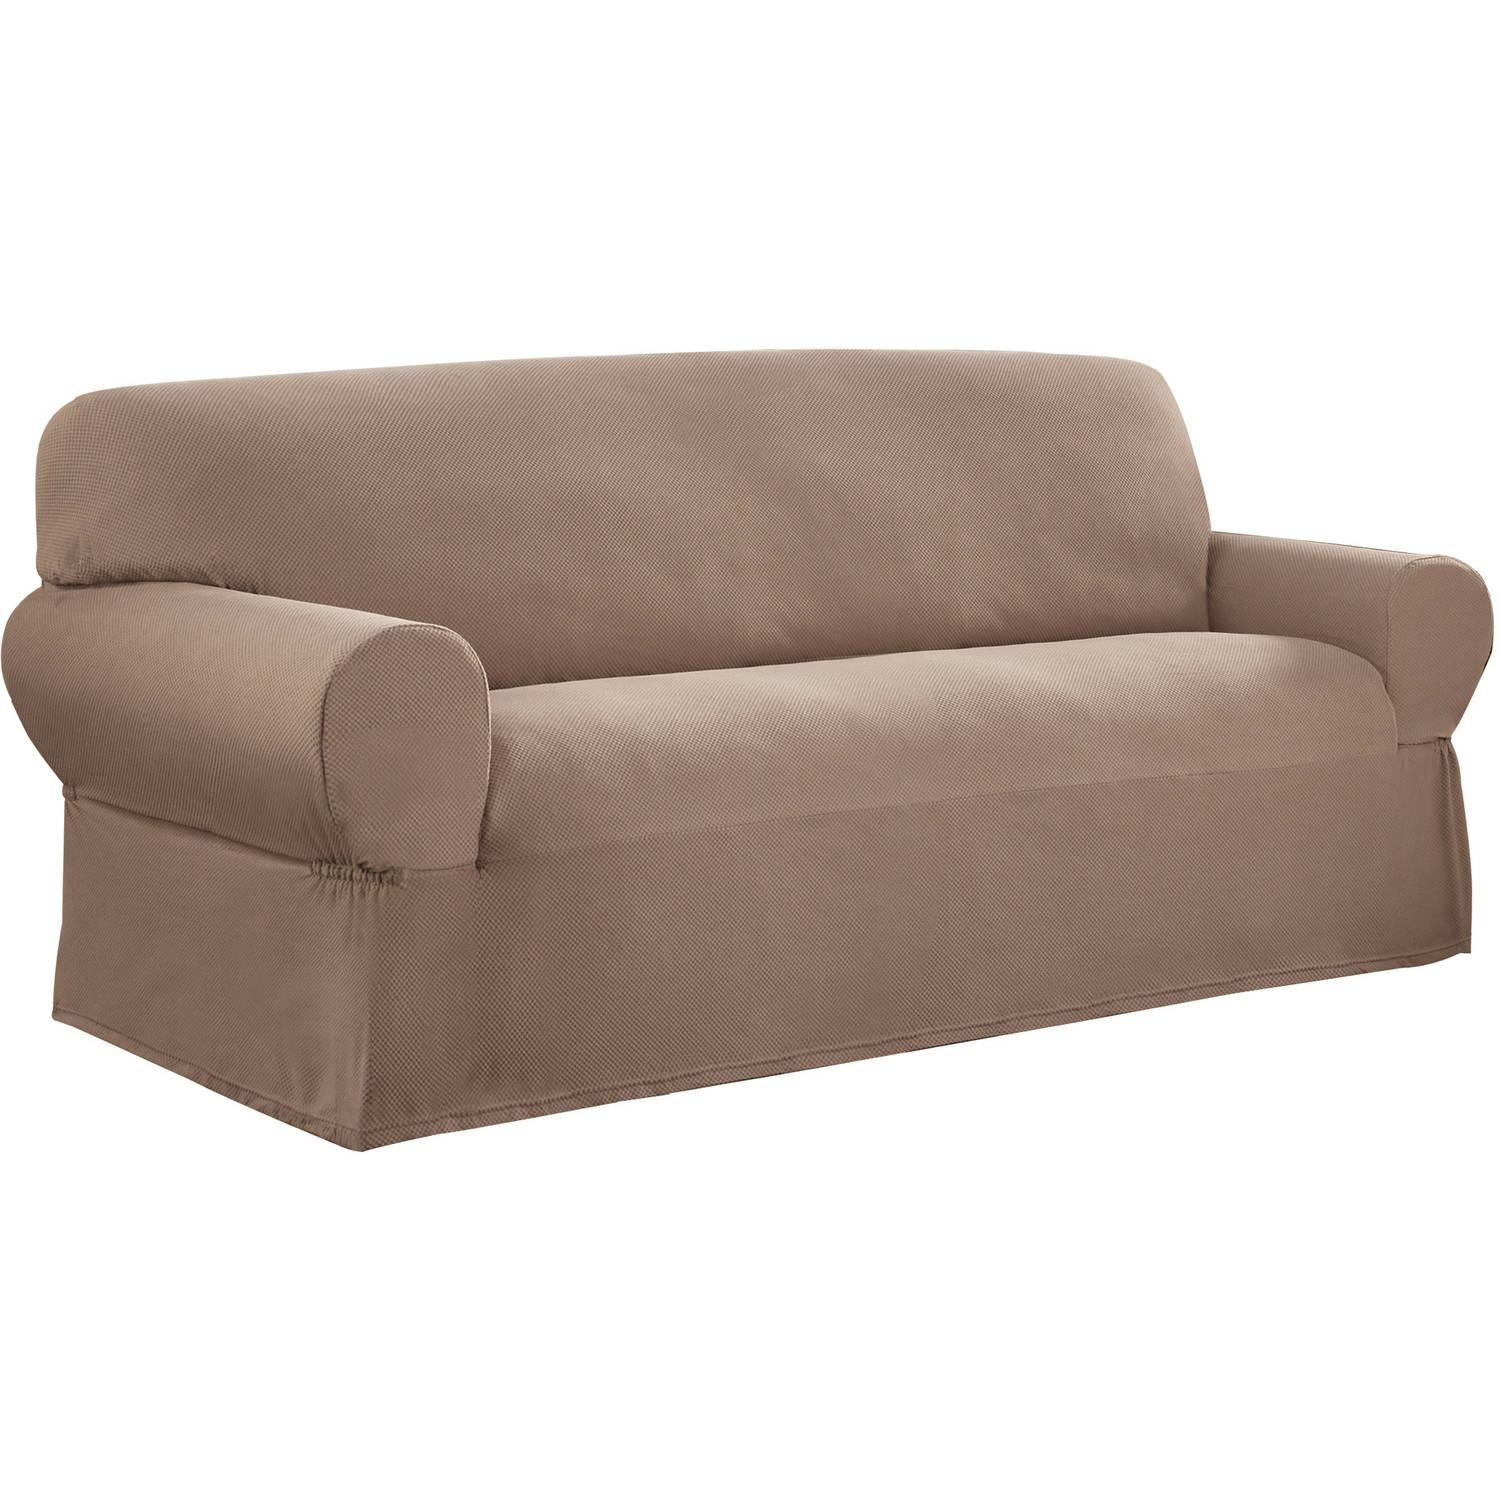 Sofas : Amazing T Cushion Loveseat Slipcover 3 Piece T Cushion Pertaining To 2 Piece Sofa Covers (Image 16 of 27)